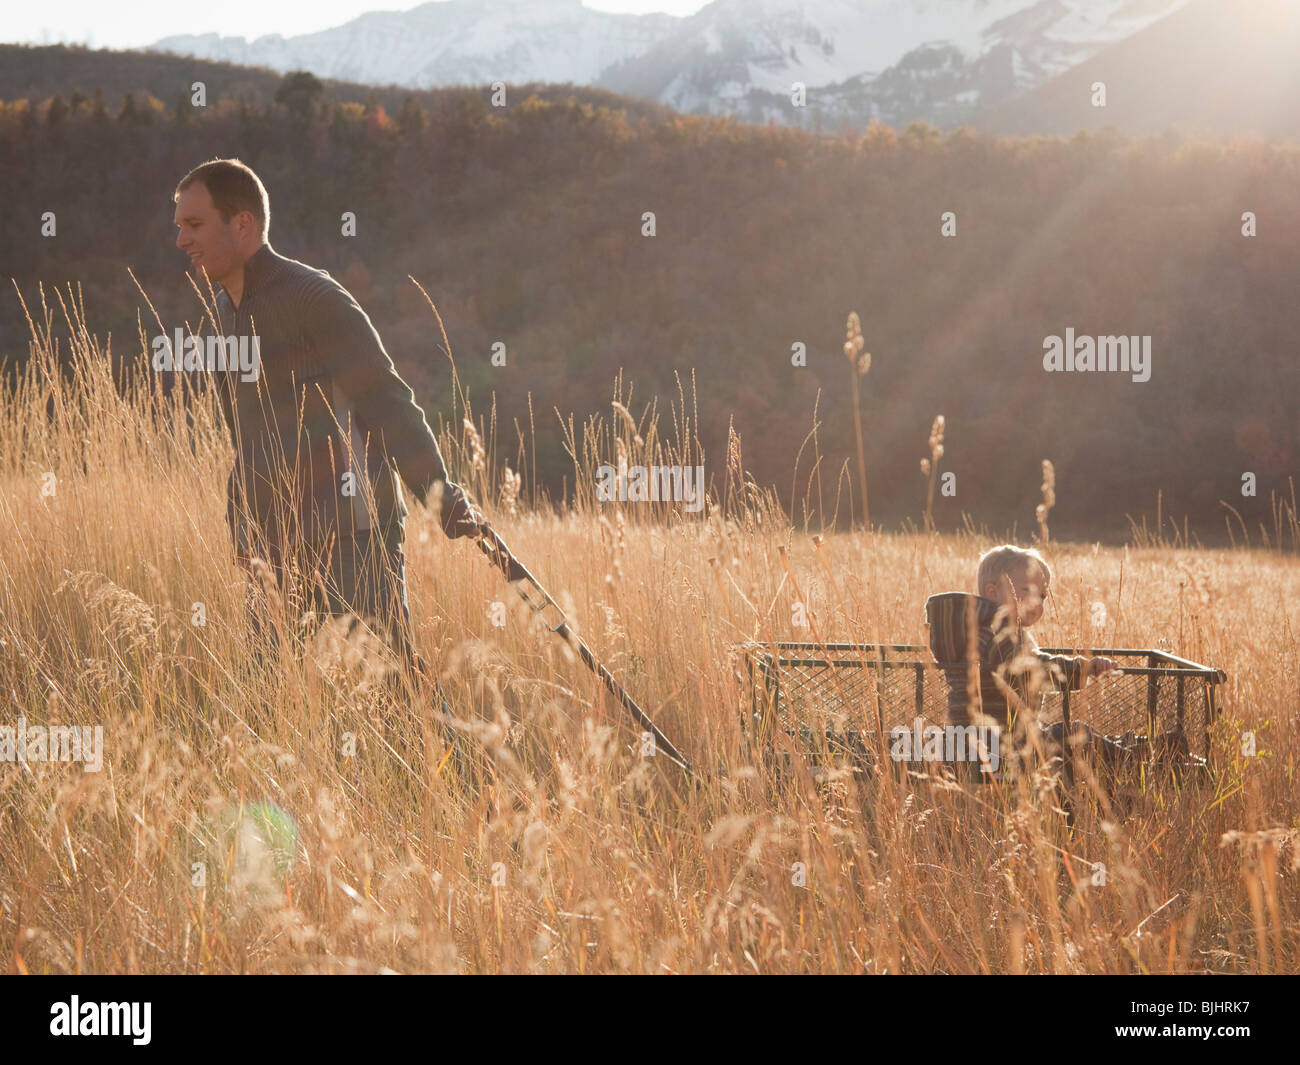 Father pulling son in wagon - Stock Image